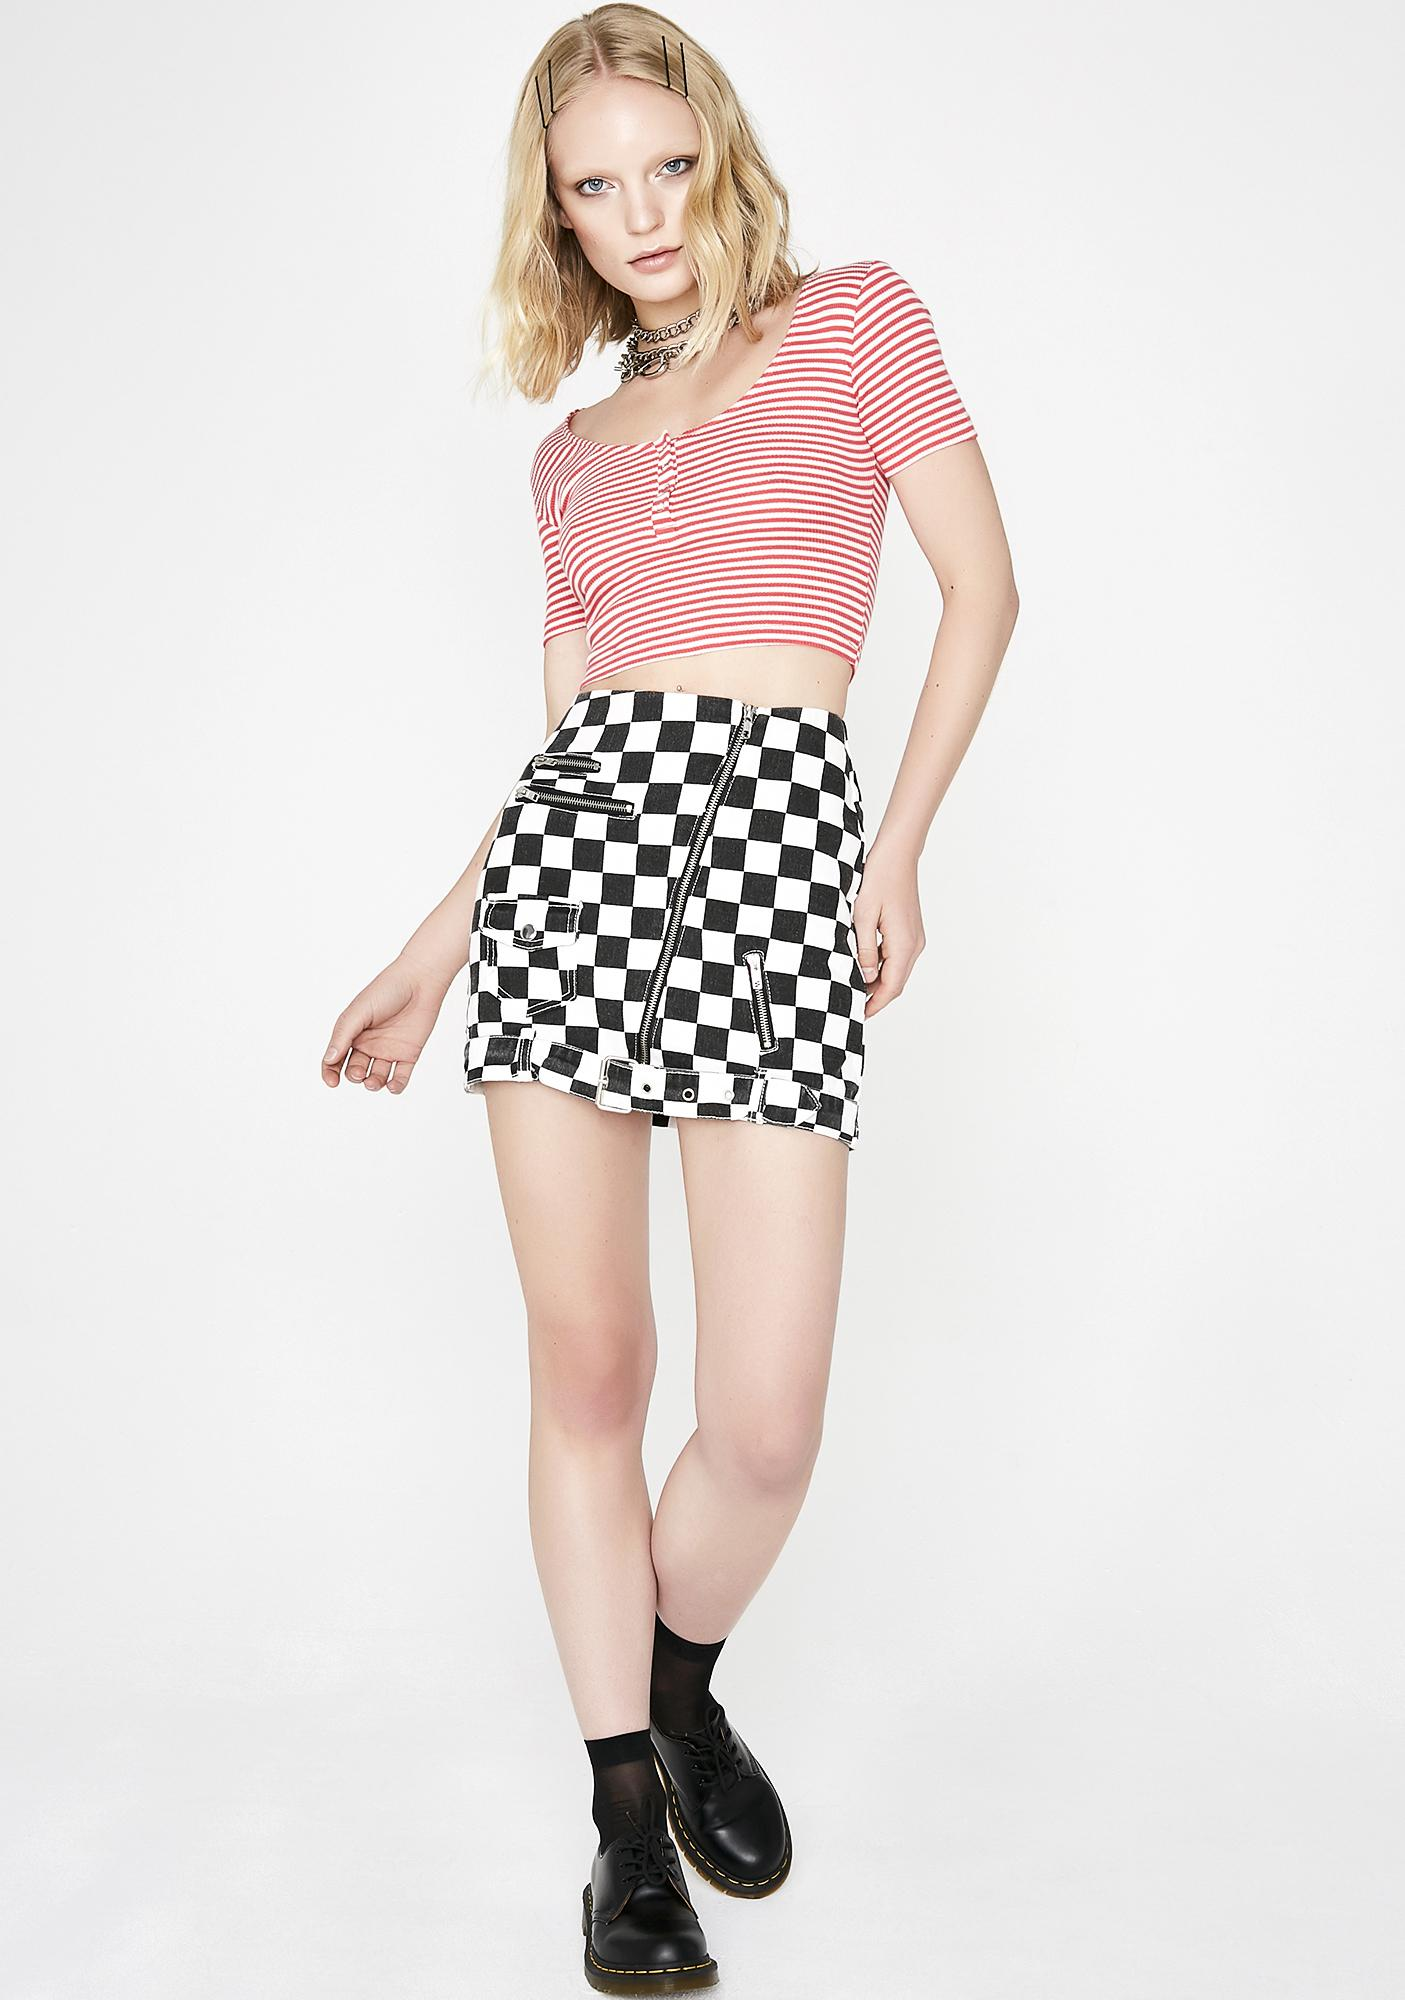 Flame Nothin' To It Striped Crop Top